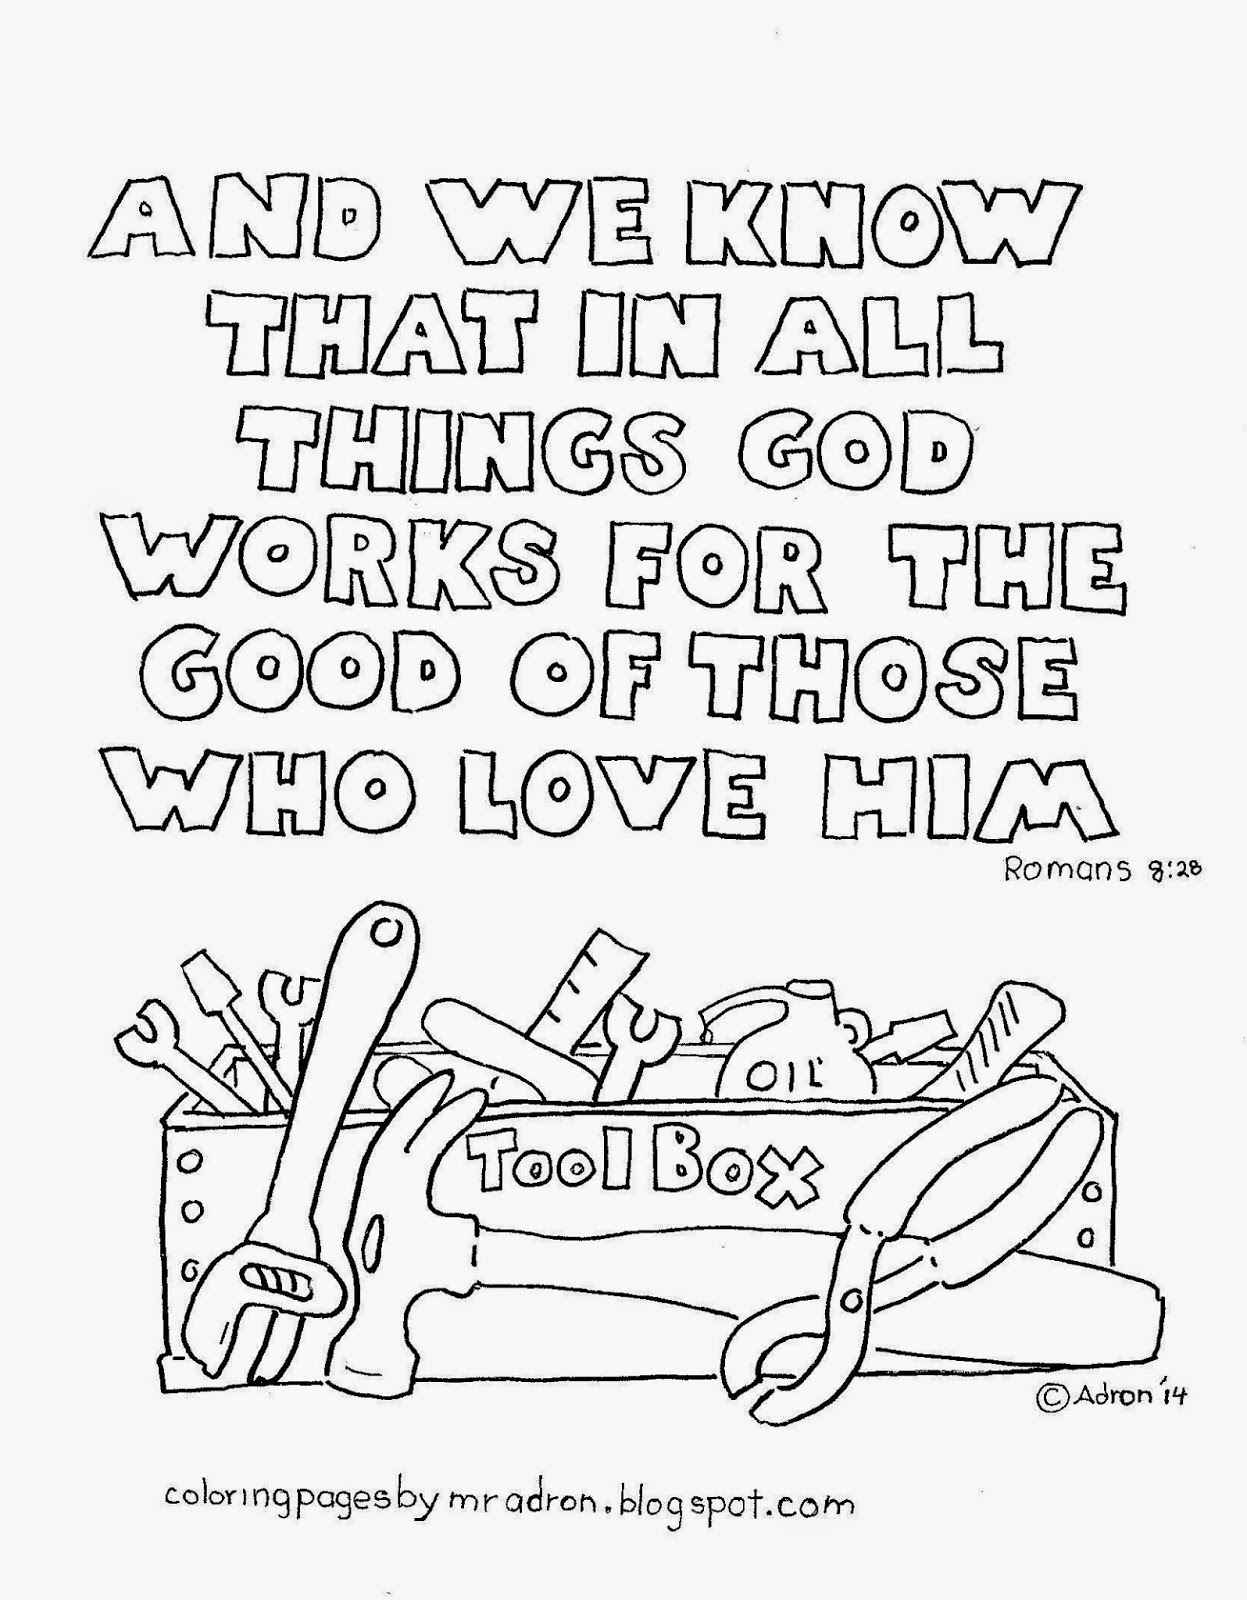 romans 5 8 coloring sheet romans 5 8 pages in spanish coloring pages coloring sheet 8 romans 5